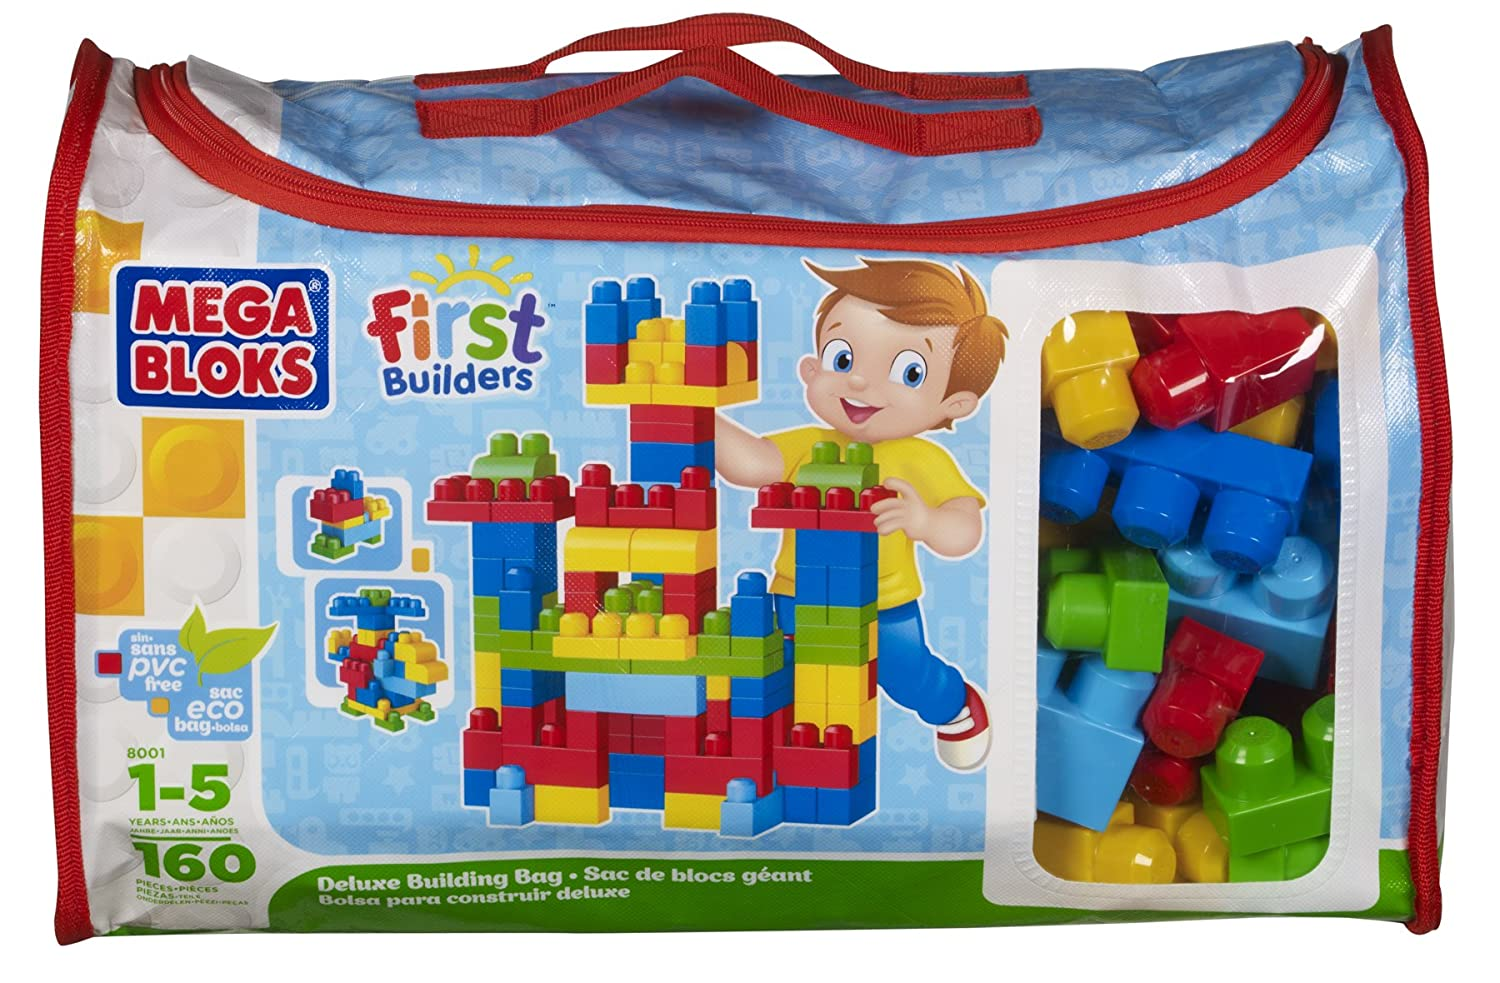 Mega Bloks First Builders Deluxe Building Bag Review  #toyreview $23.99